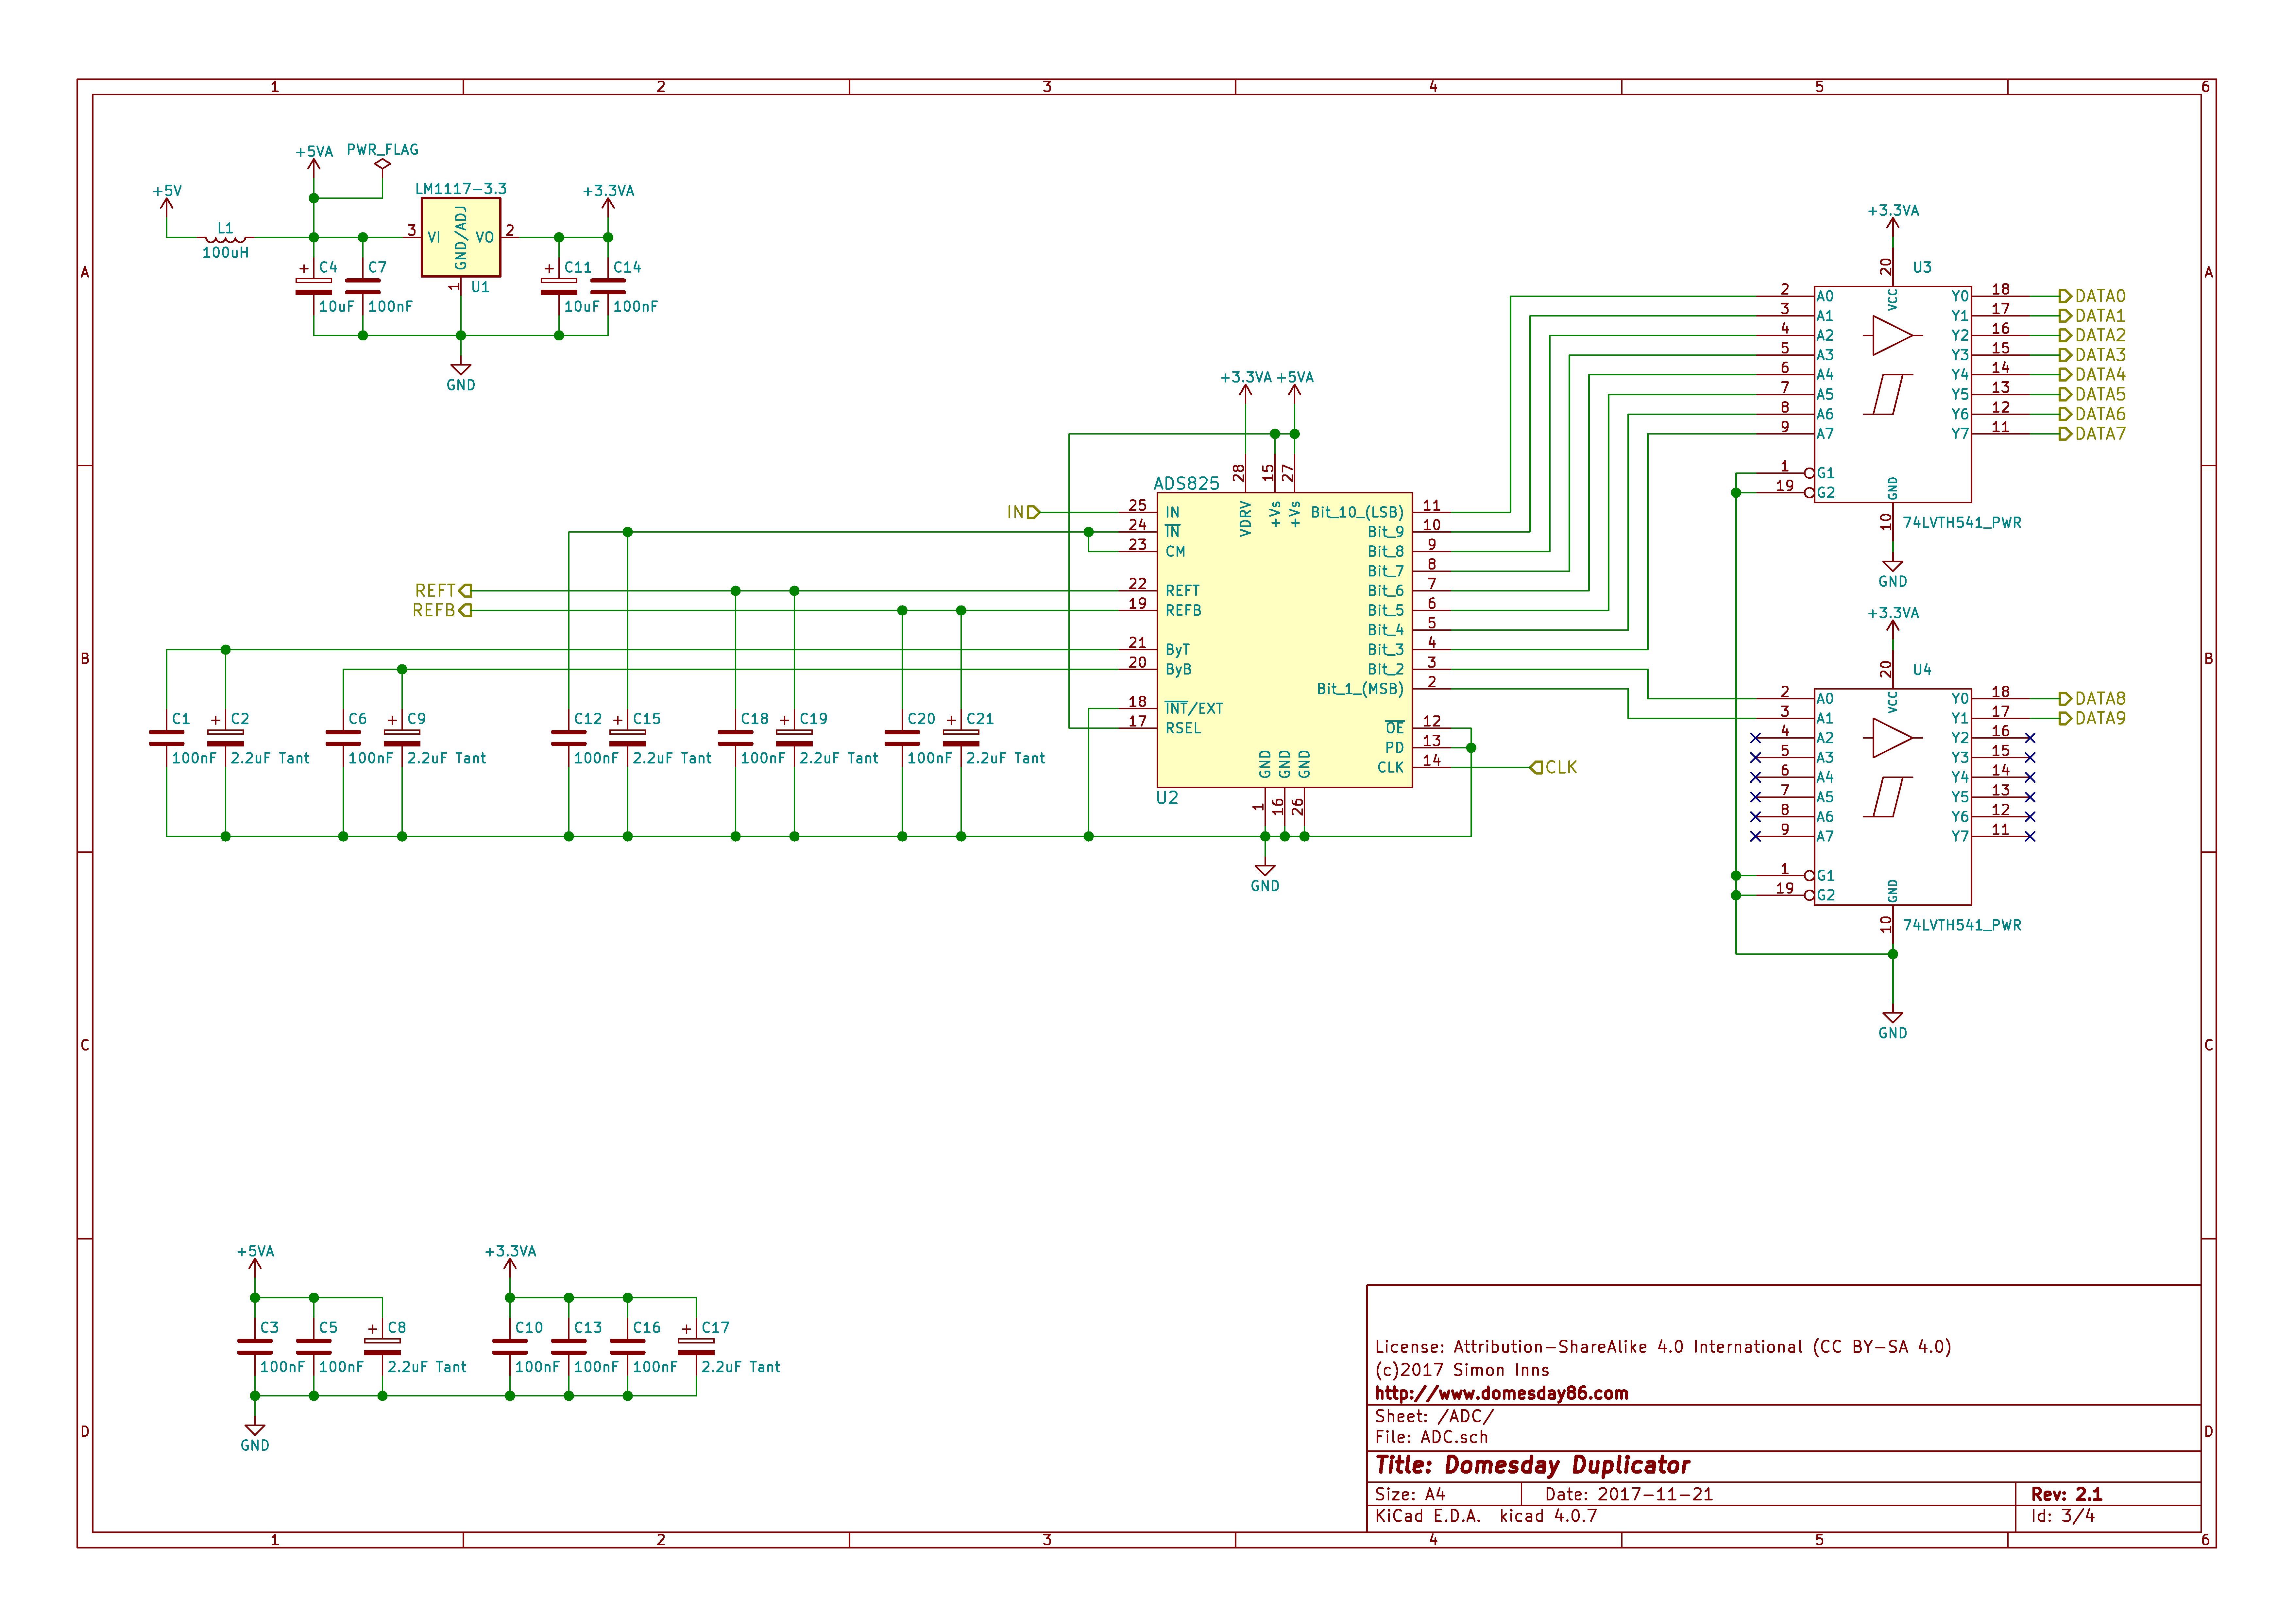 Domesday Duplicator Hardware 2 0 8 Bit Adc Circuit Diagram Schematic 1 Stage